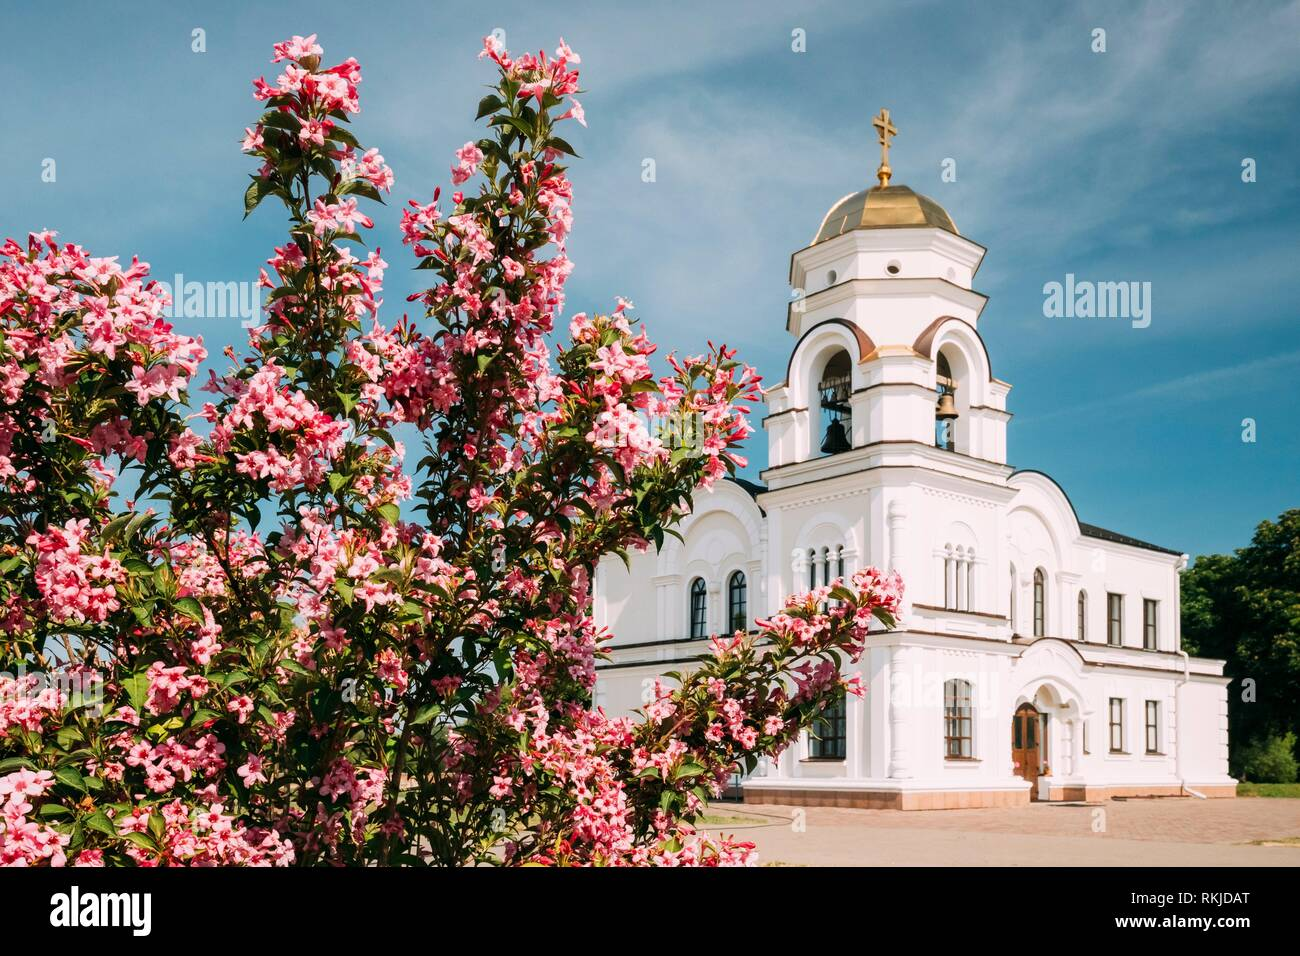 Brest, Belarus. Belfry, Bell Tower Of Garrison Cathedral St. Nicholas Church In Memorial Complex Brest Hero Fortress In Sunny Summer Day. - Stock Image